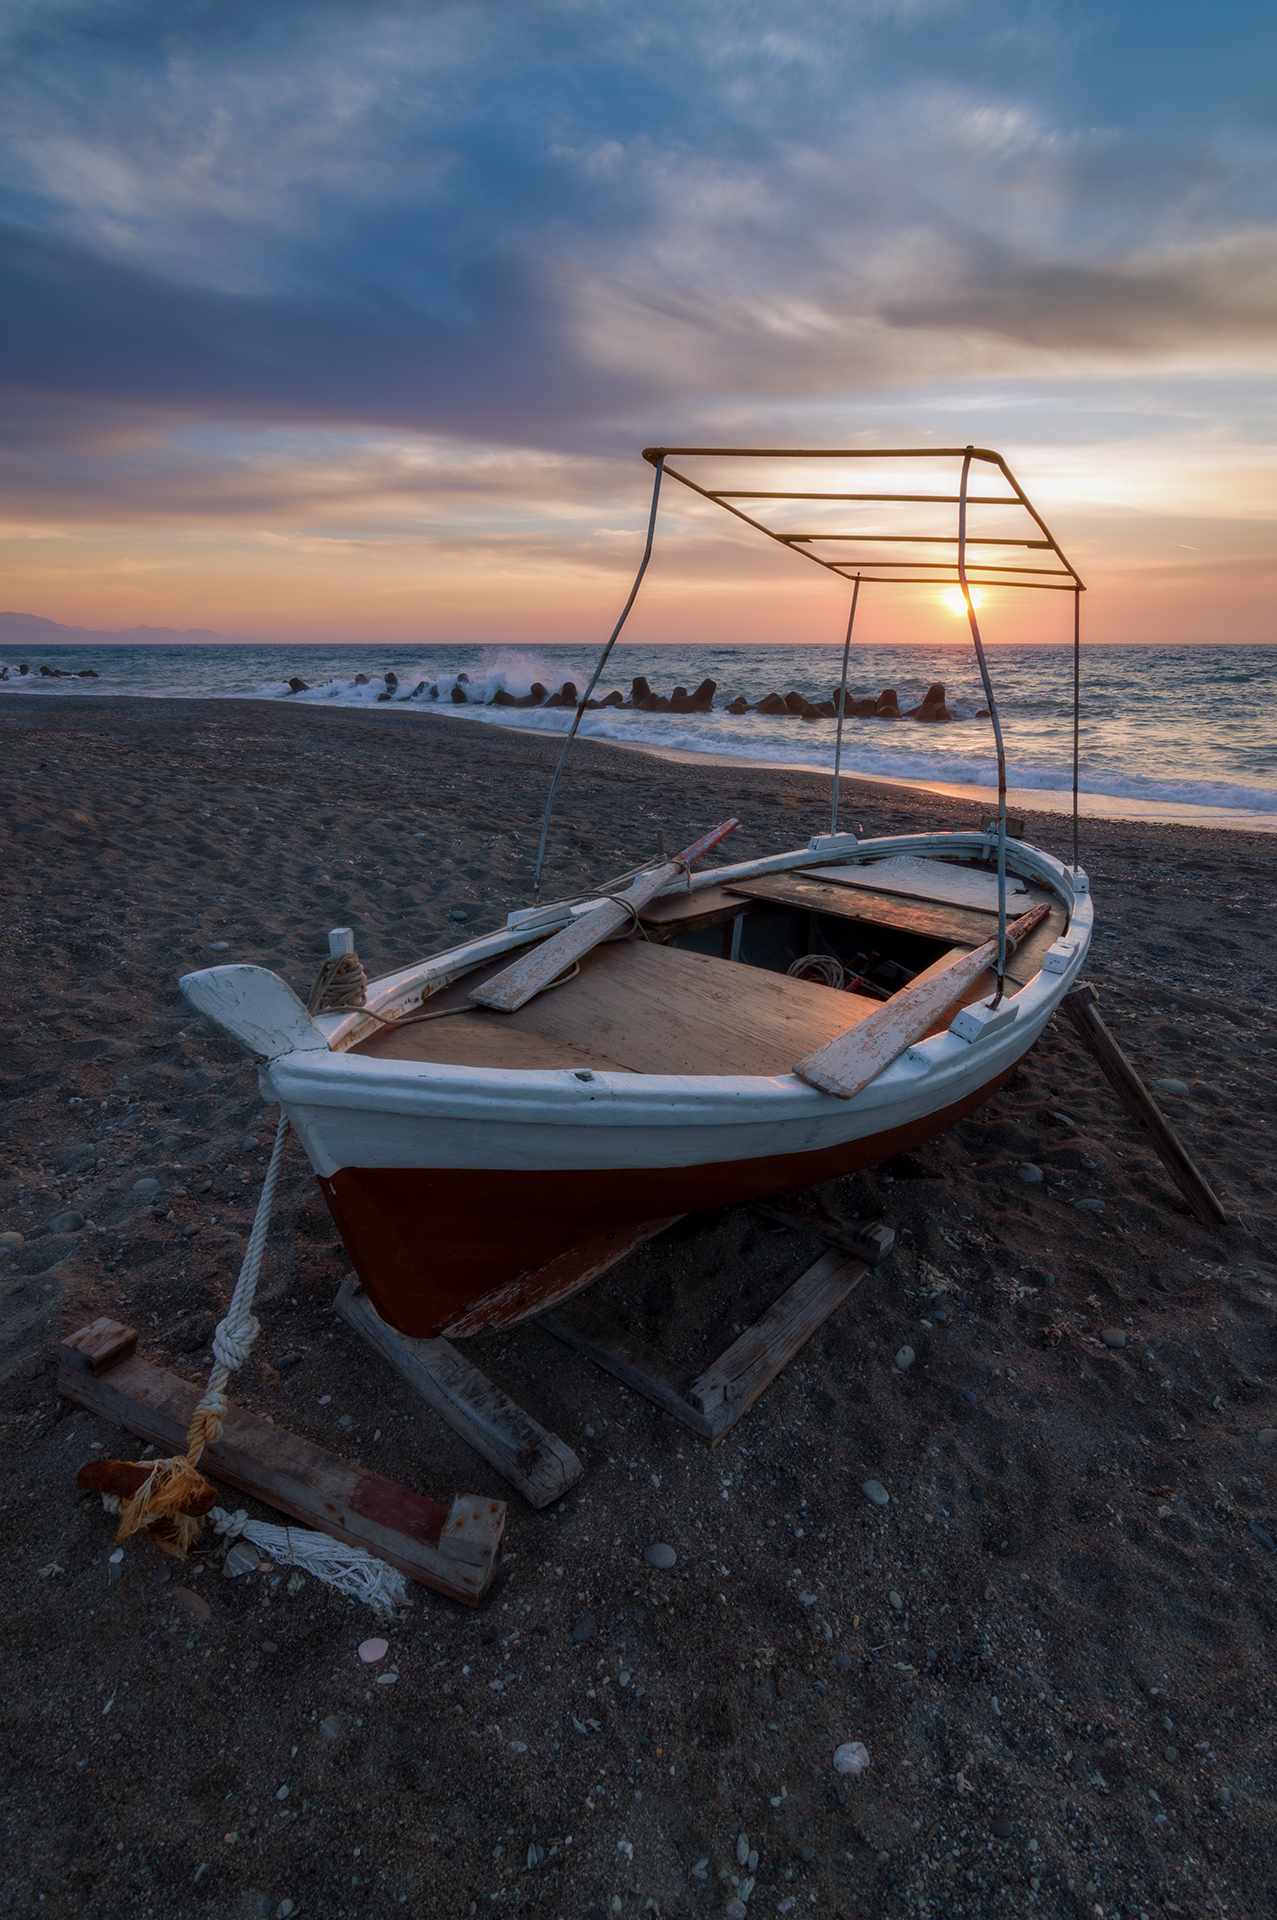 The boat at sunset...